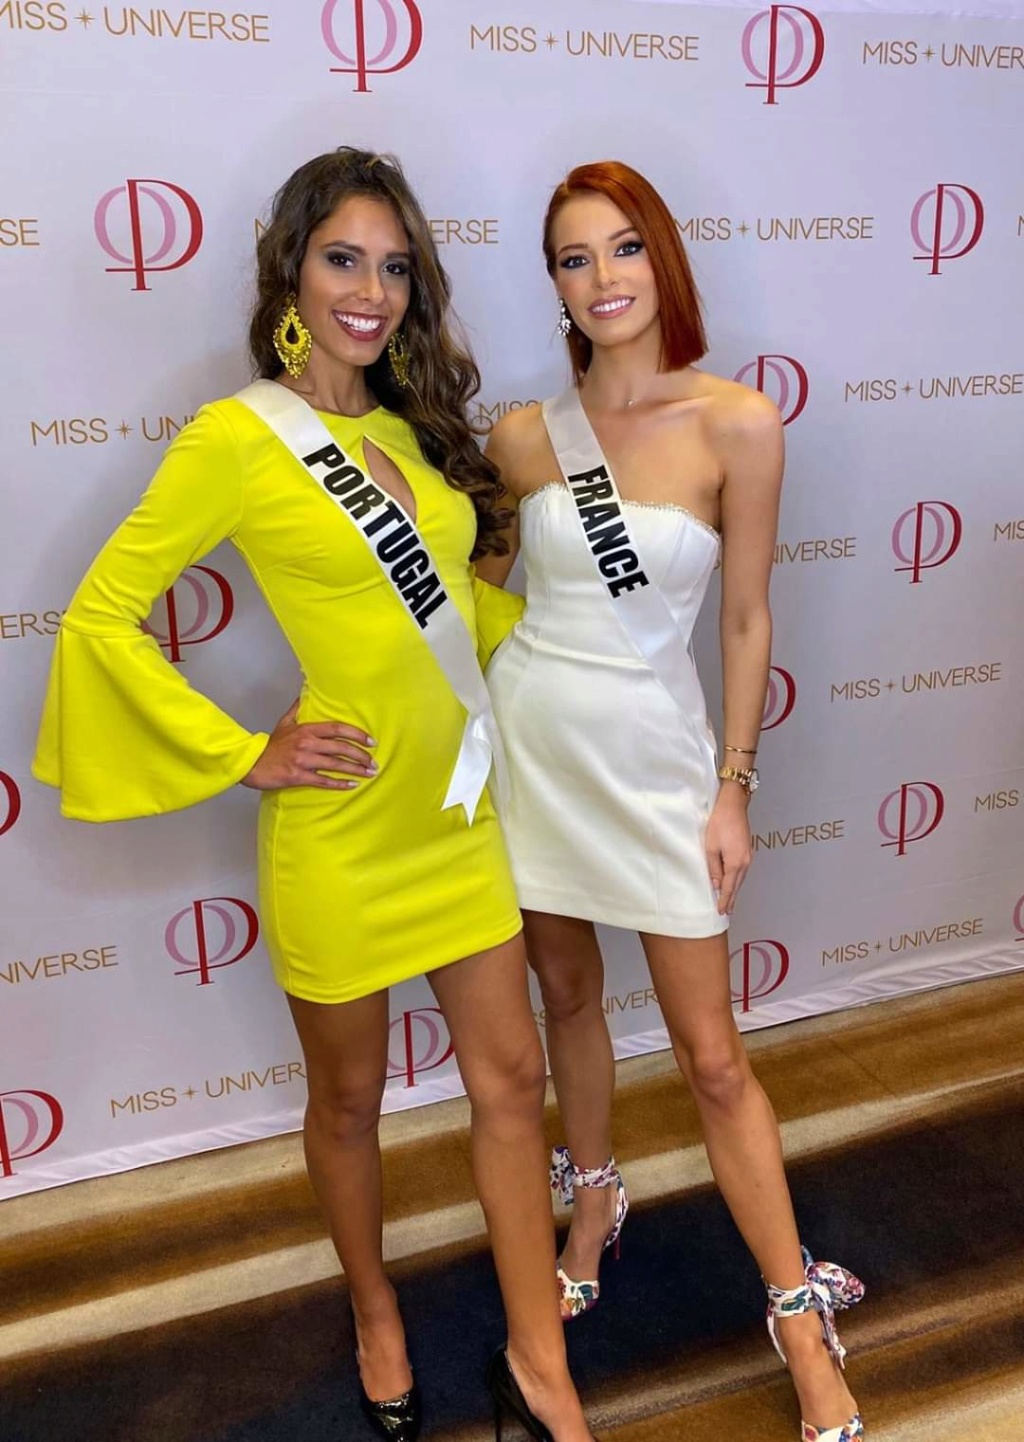 MISS UNIVERSE 2019 - OFFICIAL COVERAGE  - Page 9 Fb_13858